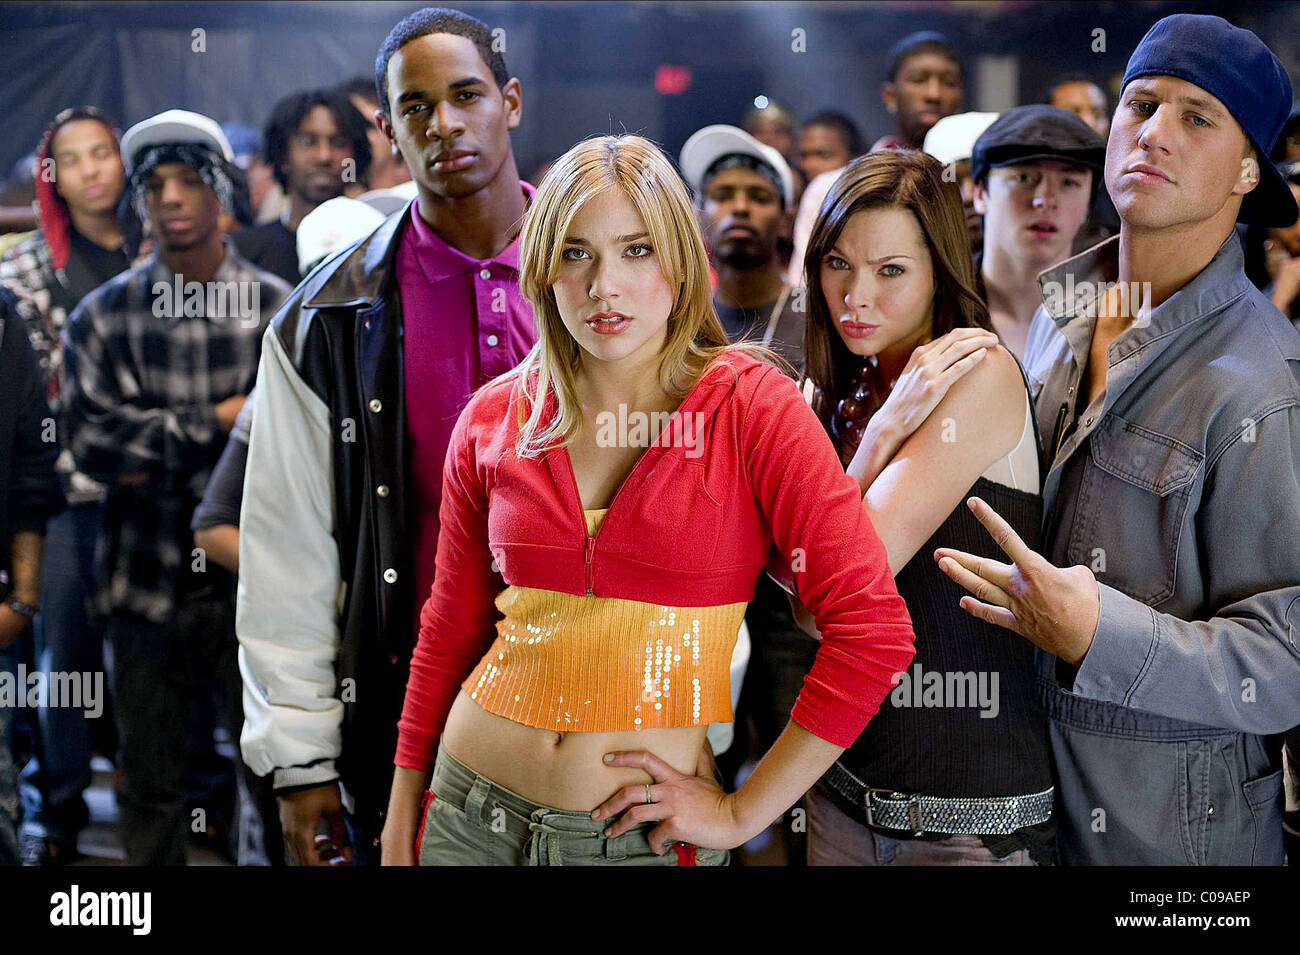 SHAWN WAYANS SHOSHANA BUSH CHRISTINA MURPHY & ROSS THOMAS DANCE FLICK (2009) - Stock Image